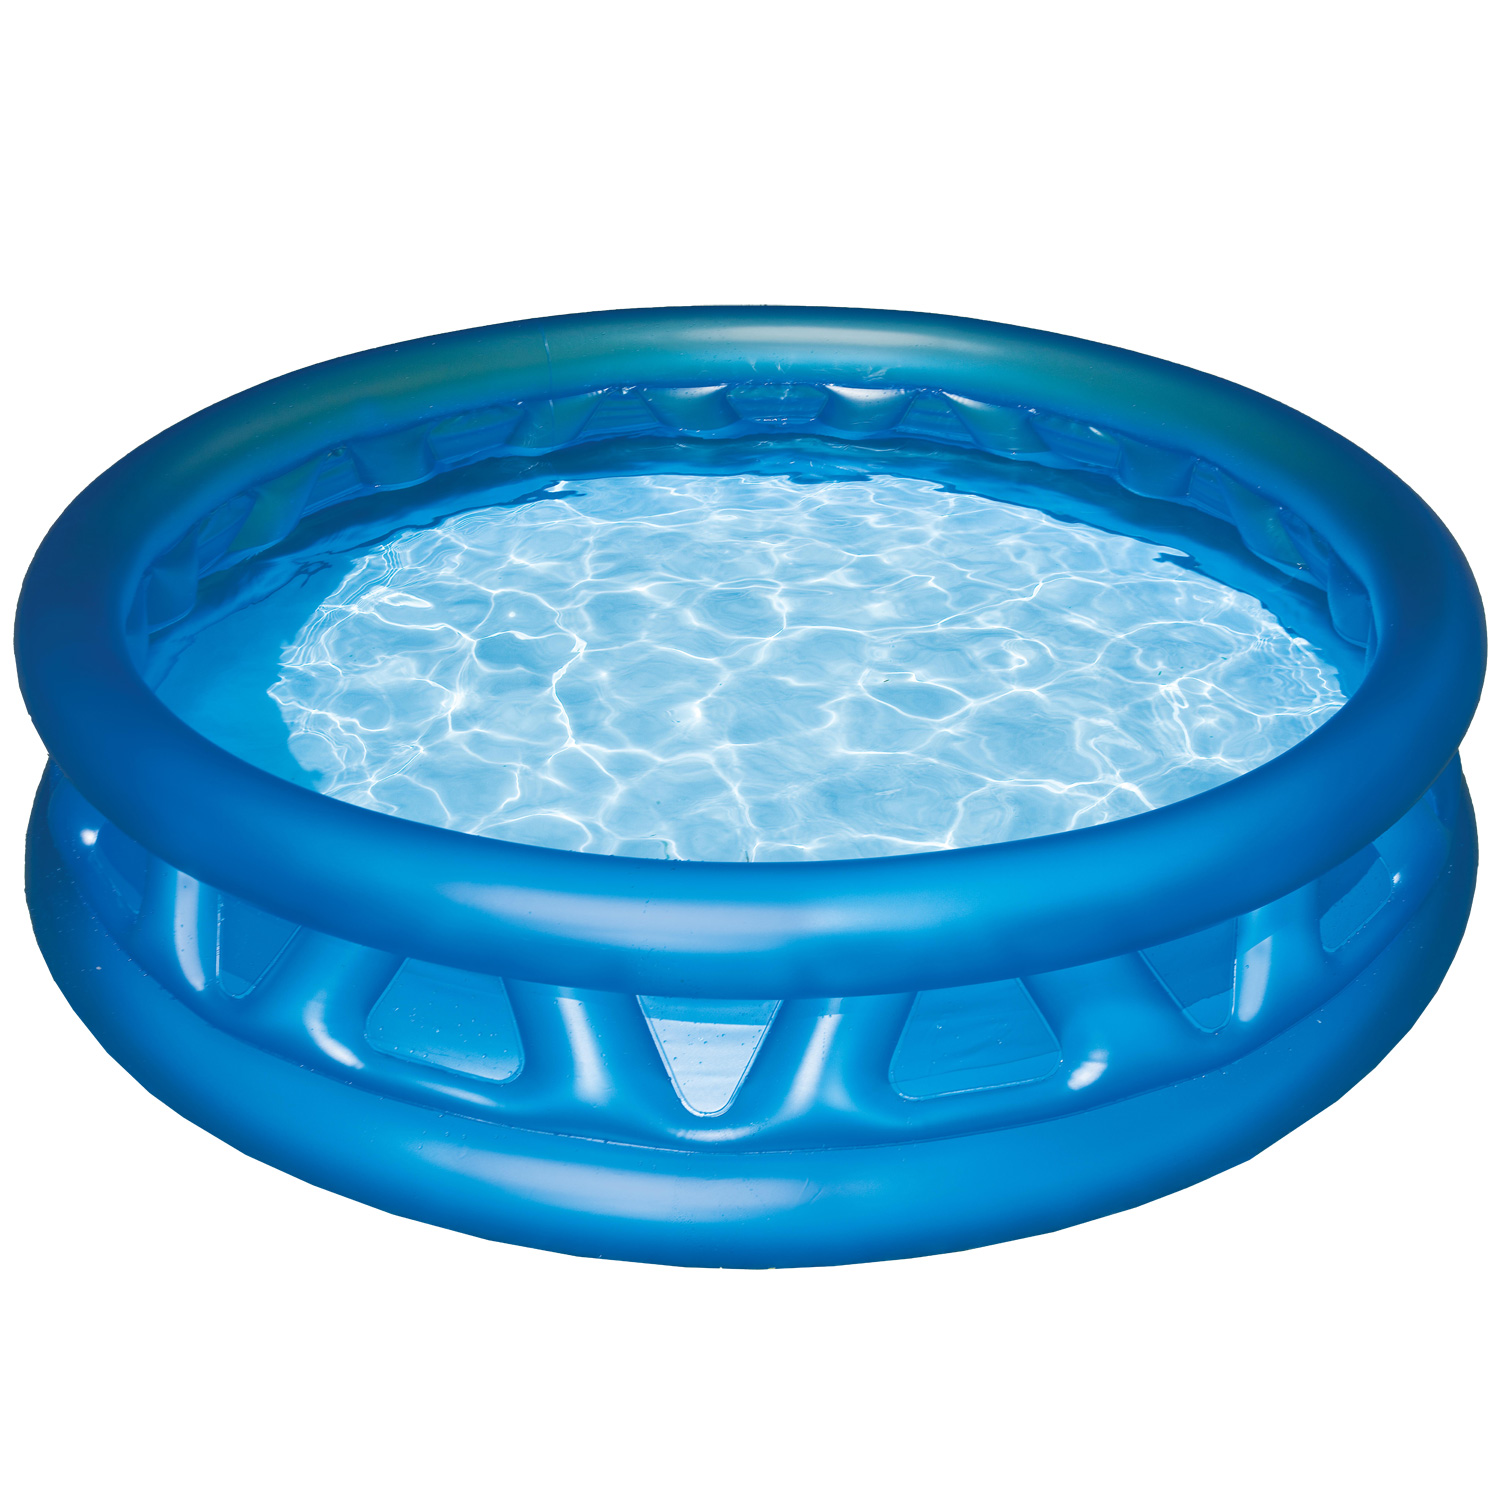 Piscine gonflable intex soft side pool raviday piscine for Piscine gonflable chauffante